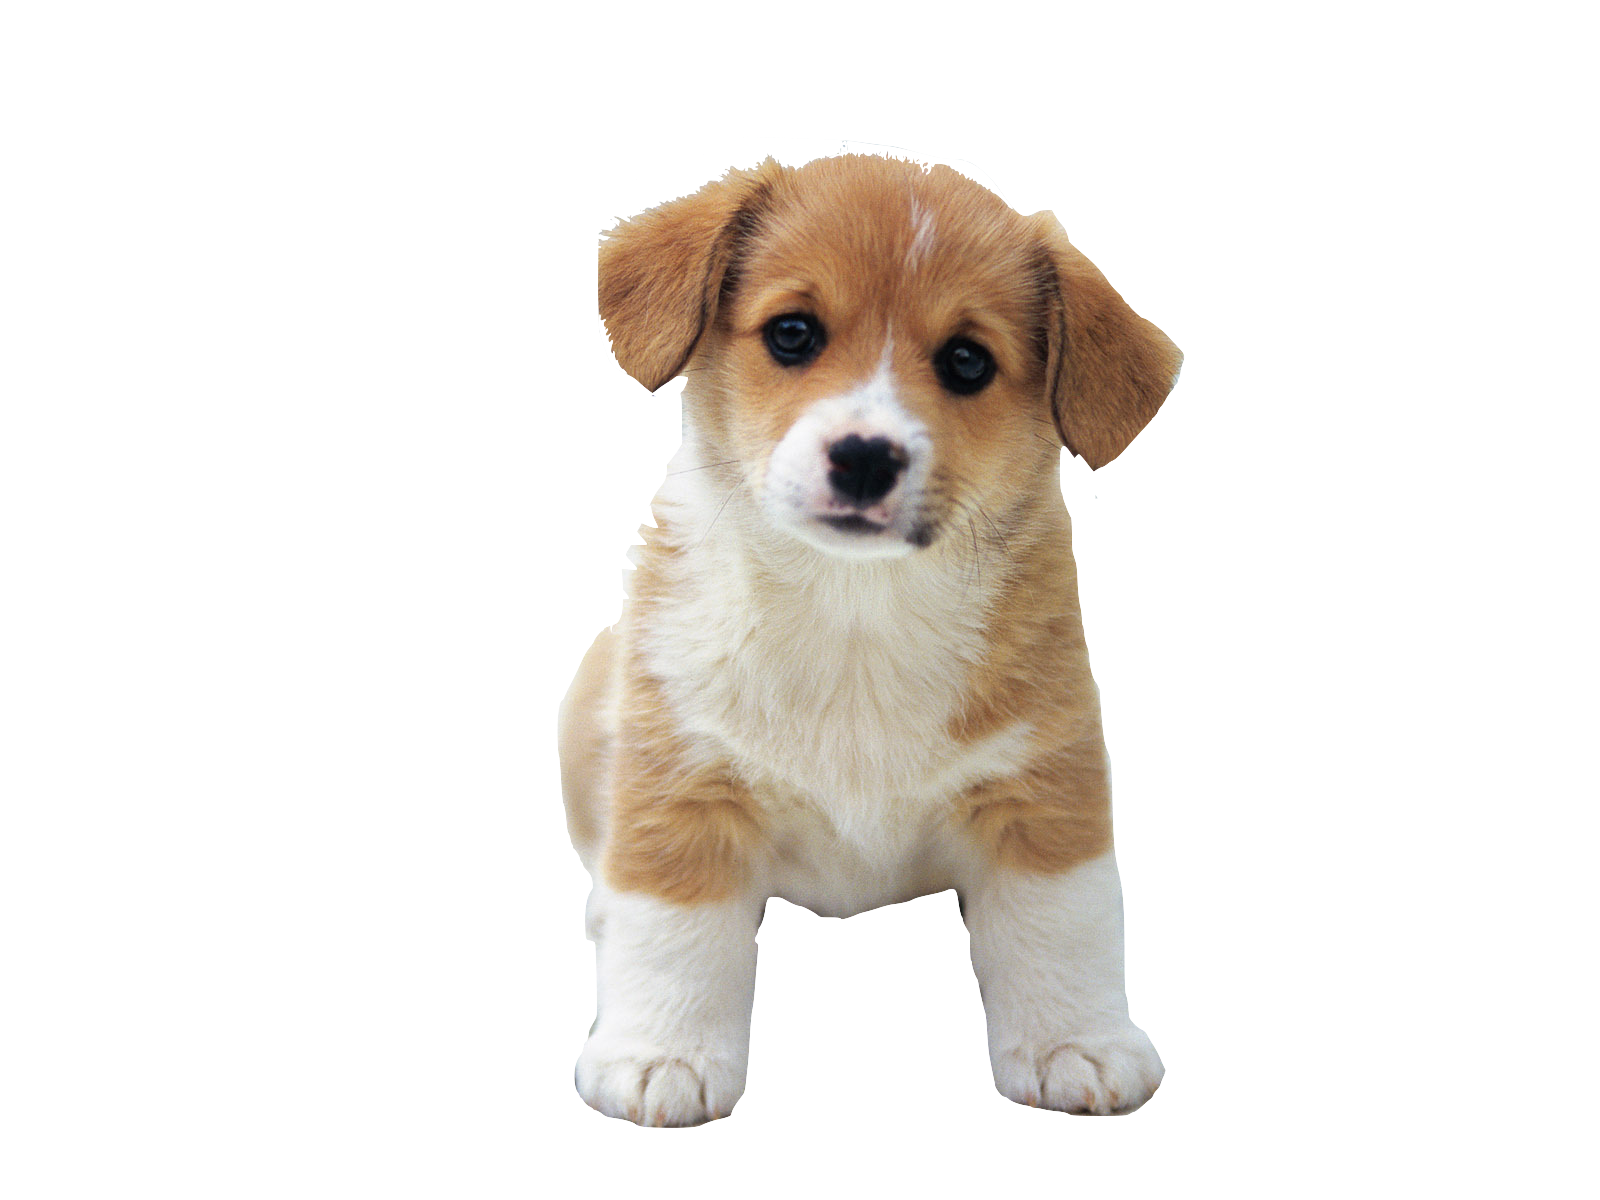 Hd transparent images pluspng. Puppy png picture library library